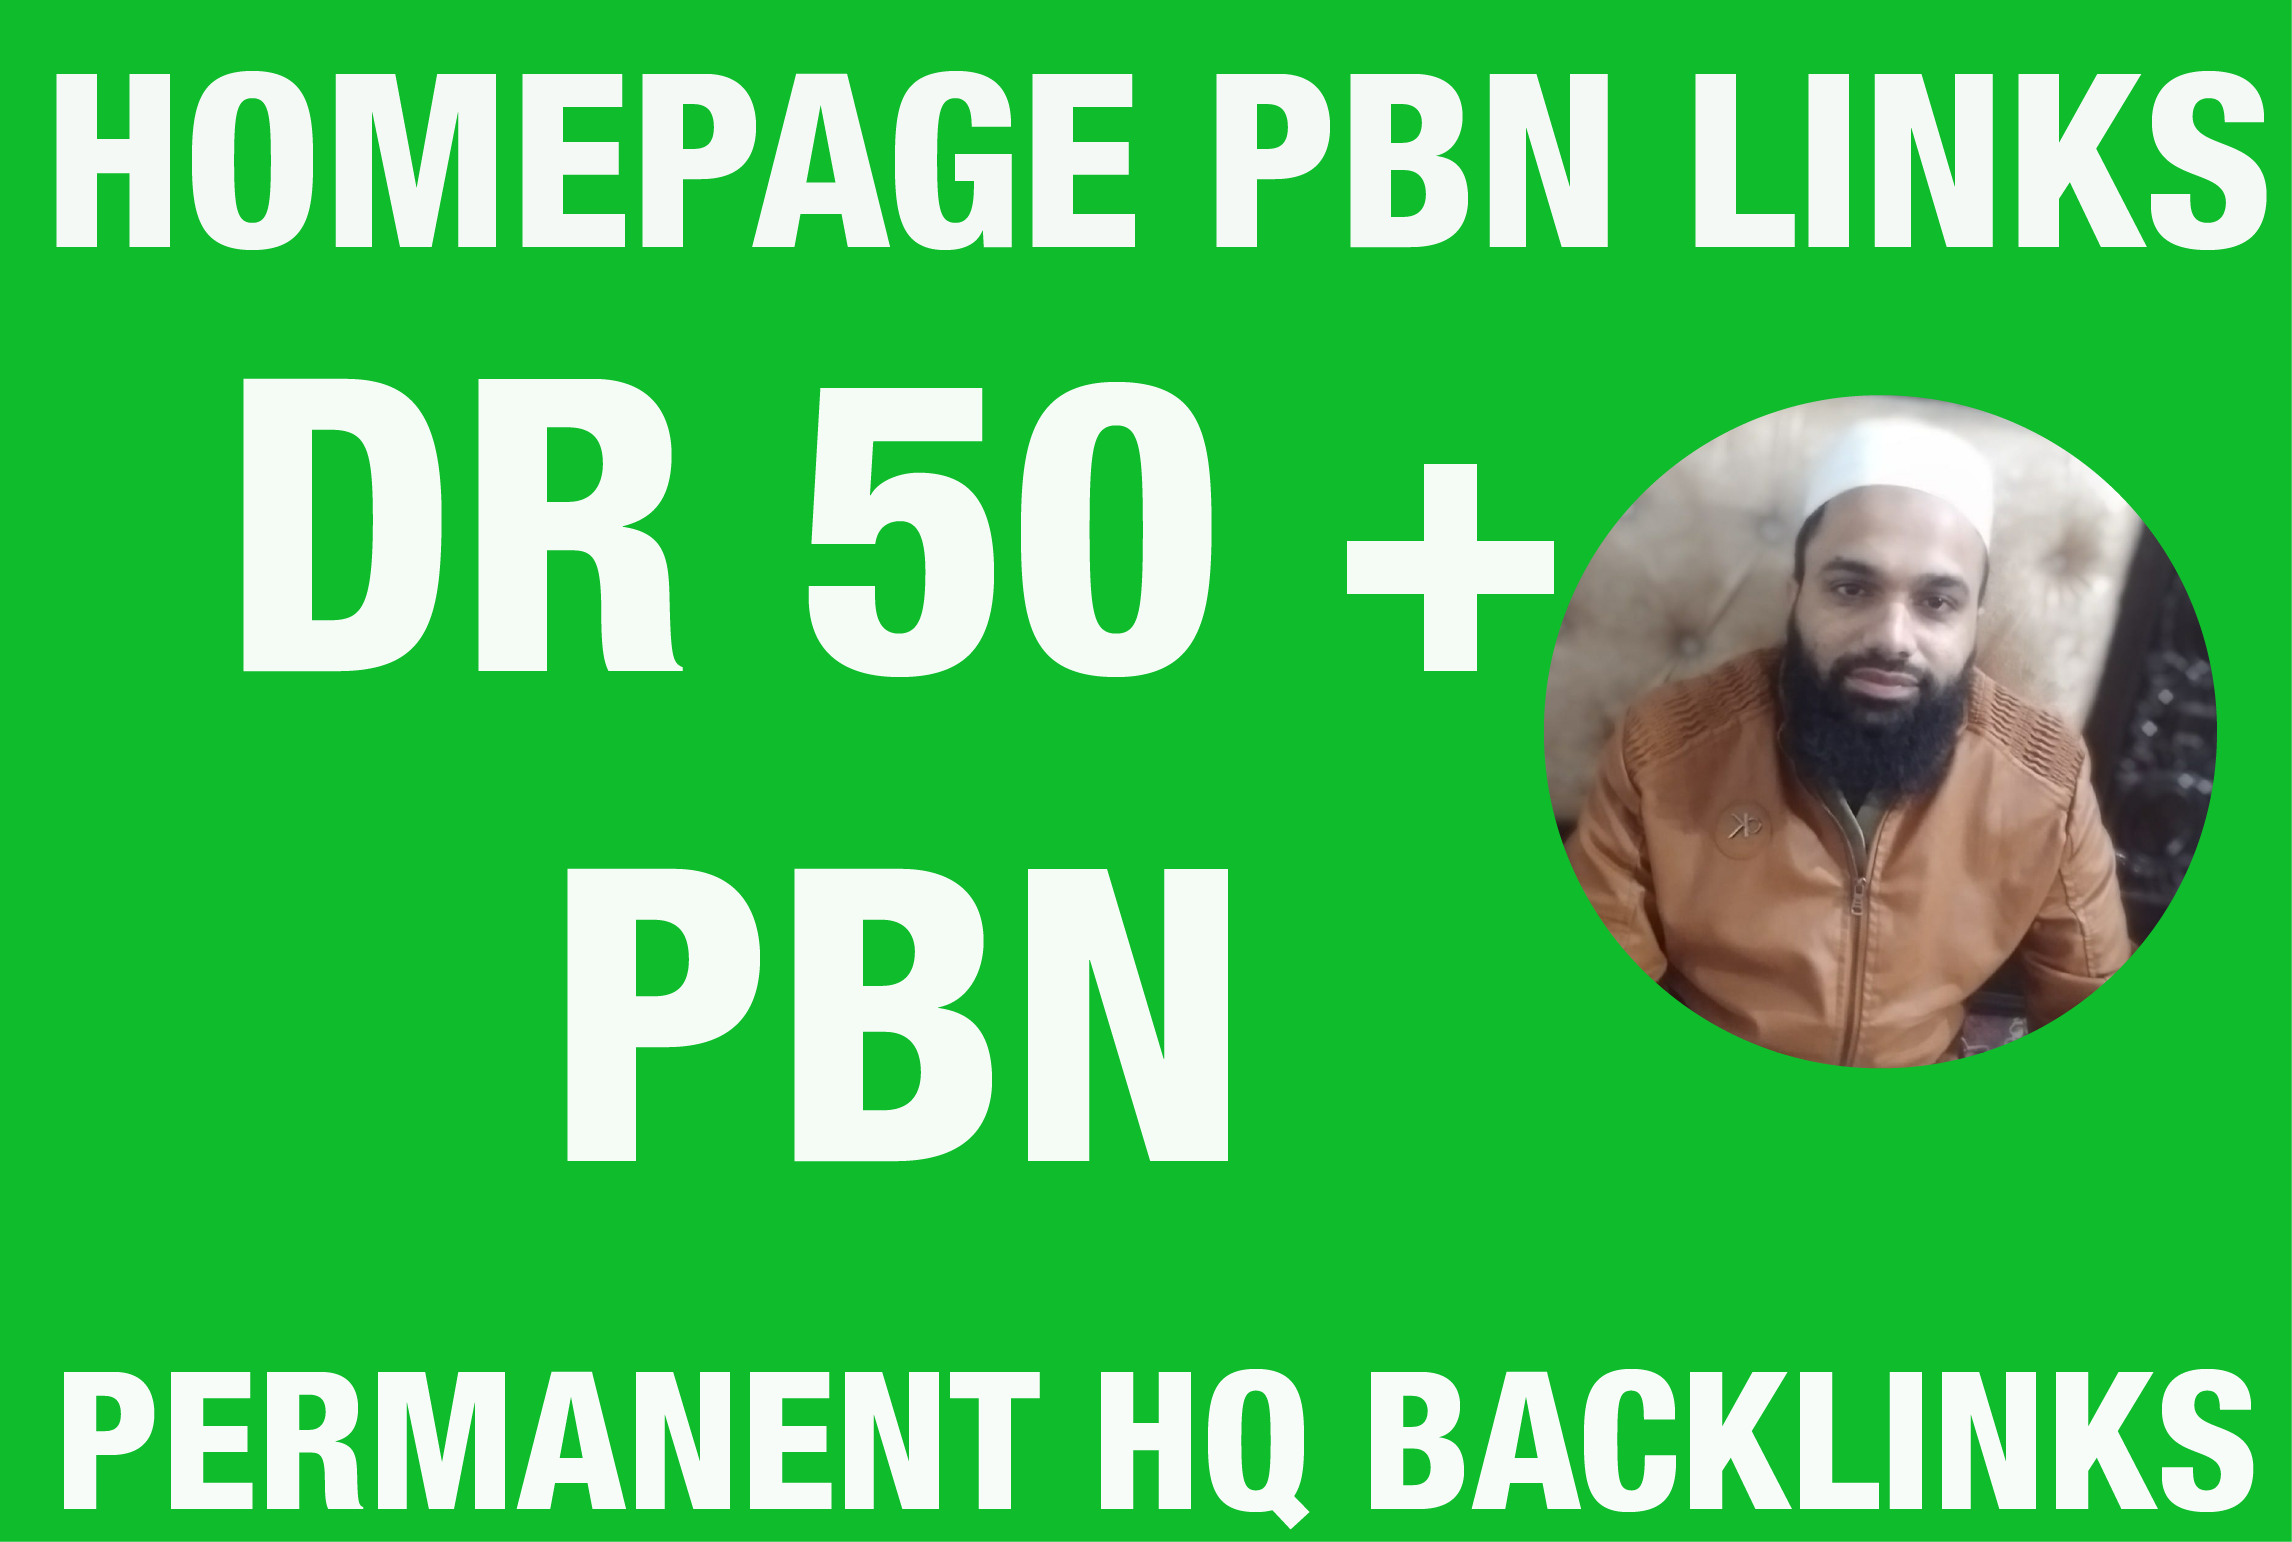 I will Provide 5 DR 60 Homepage PBN Backlinks